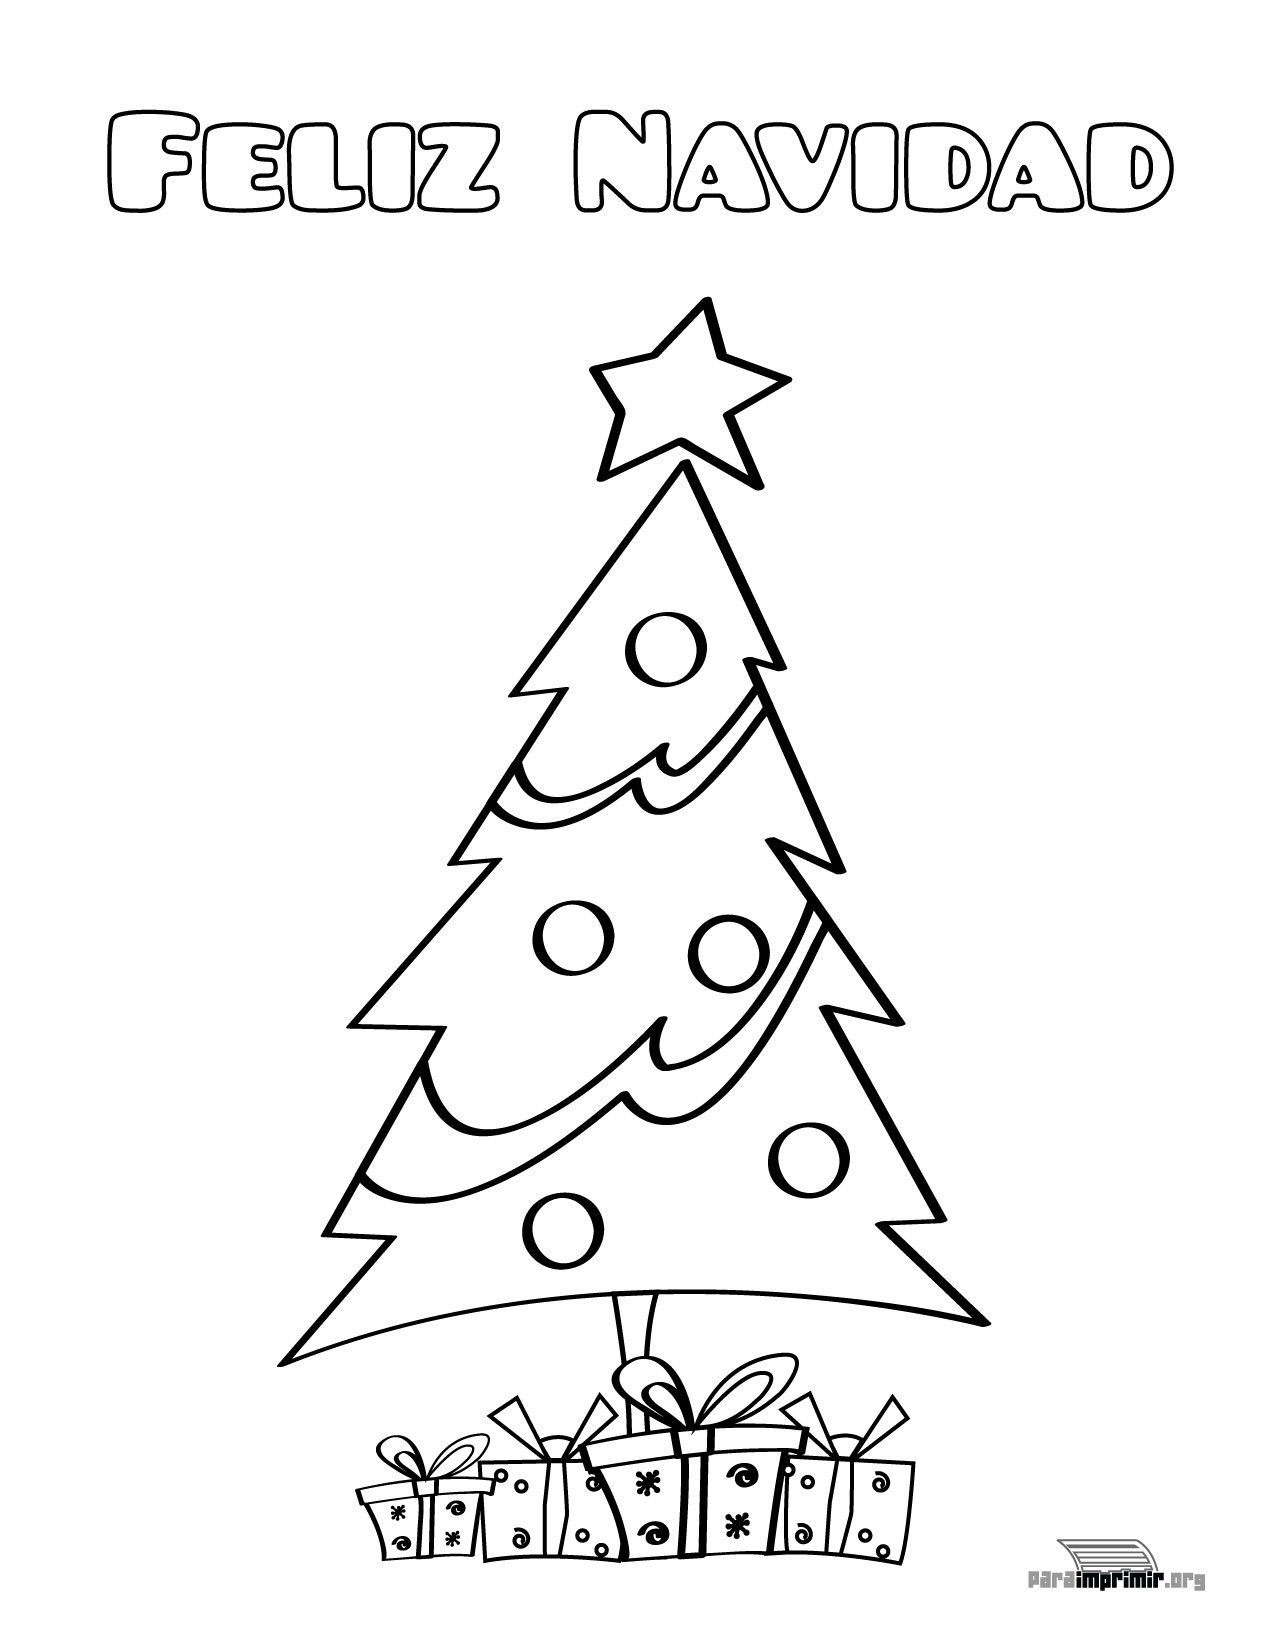 feliz cumpleanos coloring pages - free coloring pages of mam feliz cumplea os